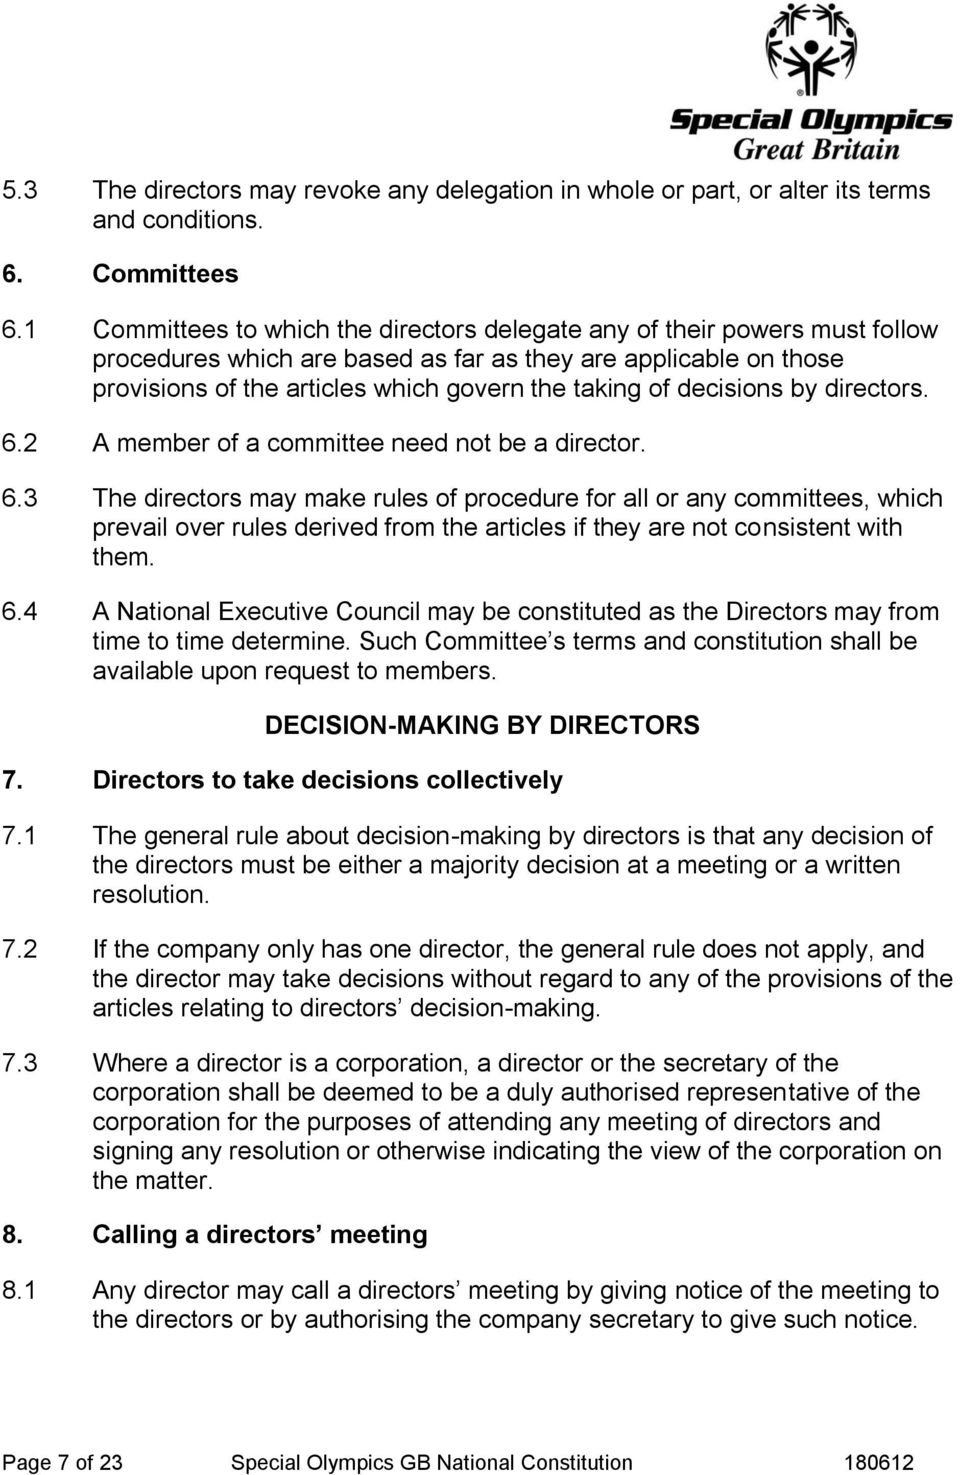 decisions by directors. 6.2 A member of a committee need not be a director. 6.3 The directors may make rules of procedure for all or any committees, which prevail over rules derived from the articles if they are not consistent with them.